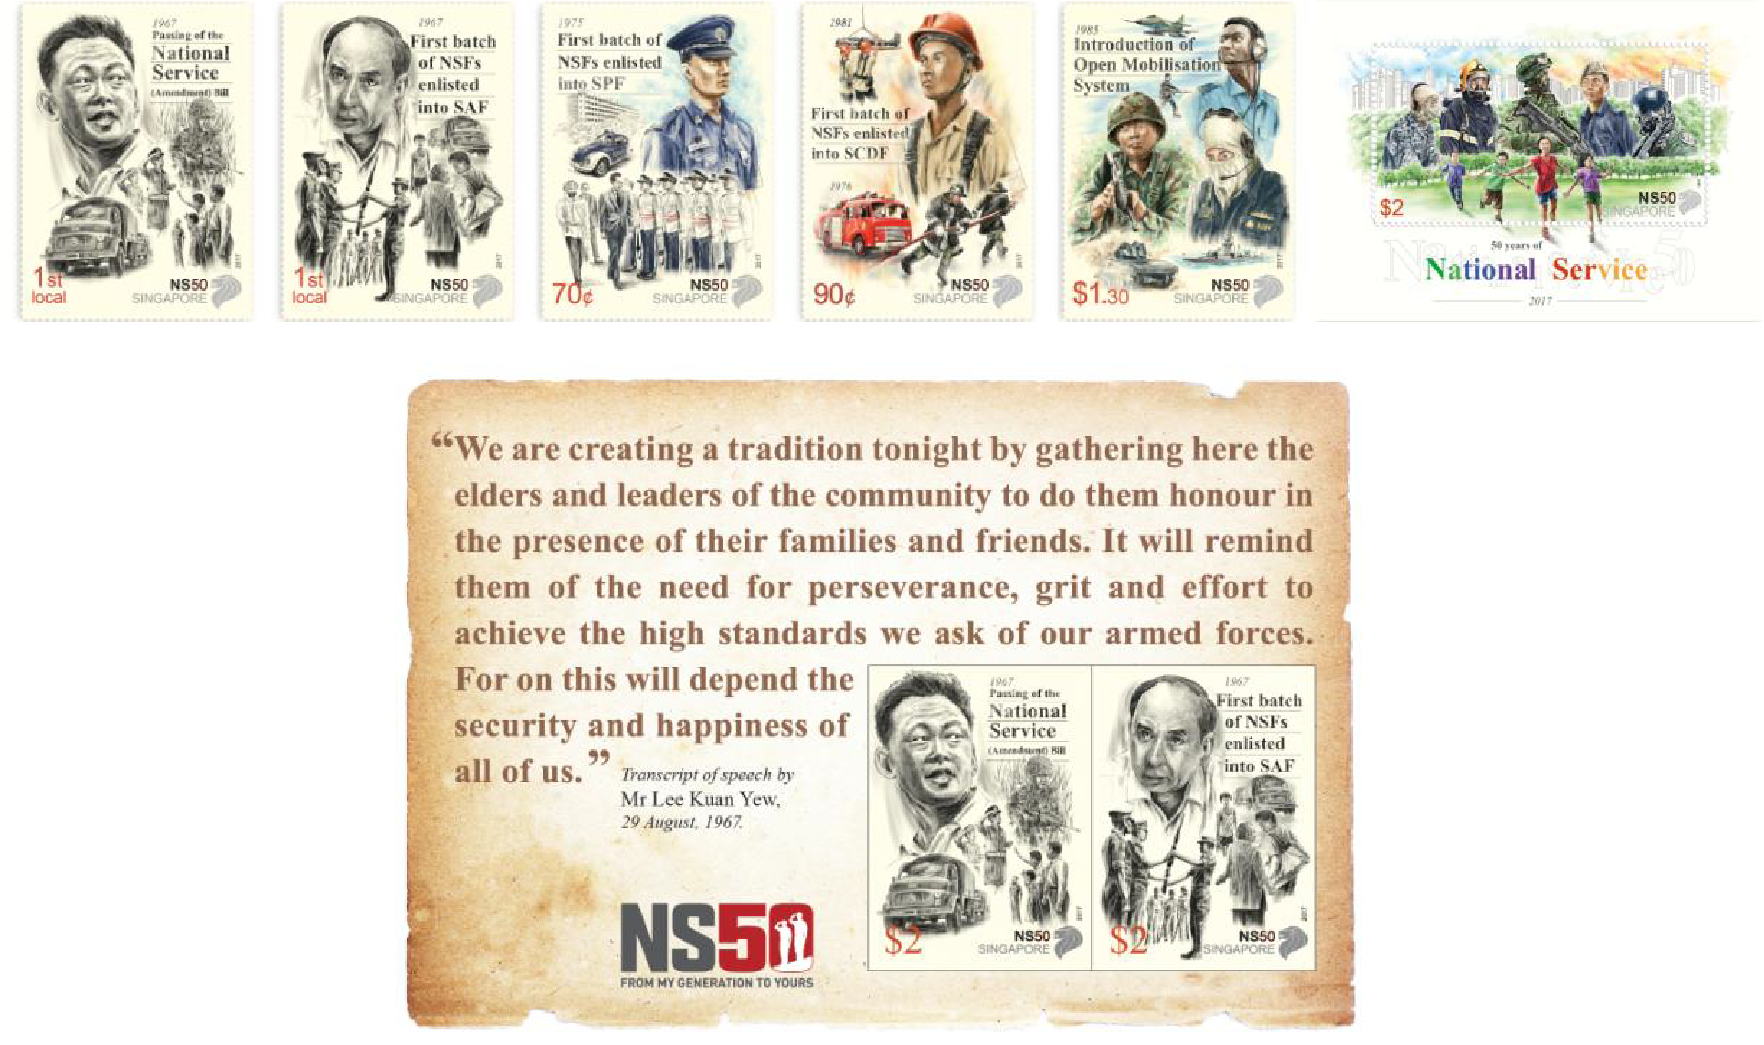 SingPost released a new set of six stamps to commemorate 50 years of National Service.